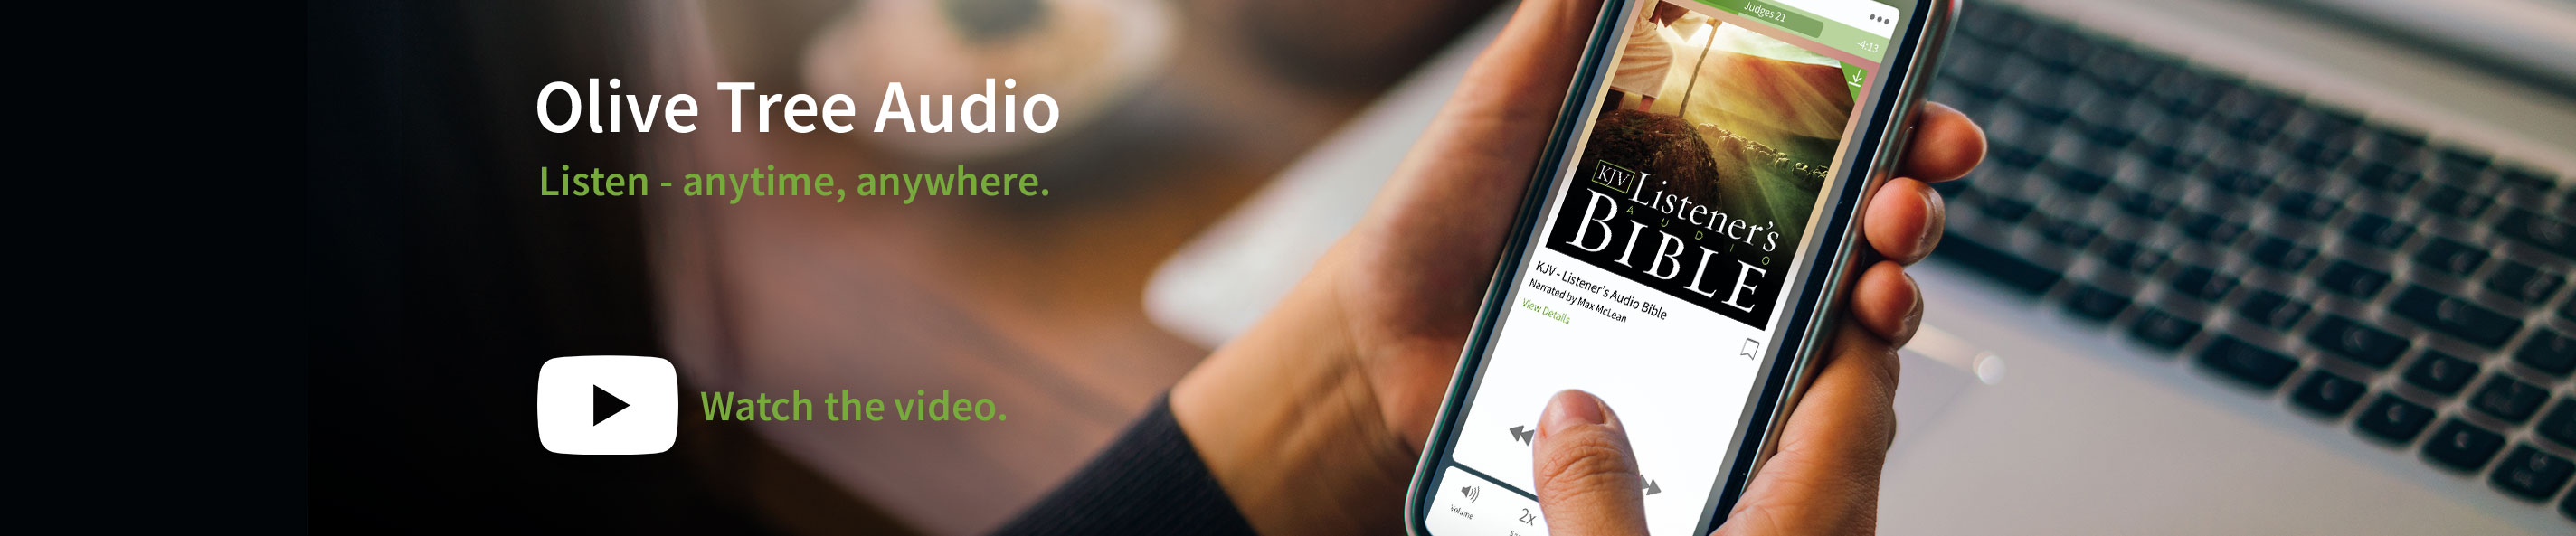 Audio Resources for the Olive Tree Bible App - Olive Tree